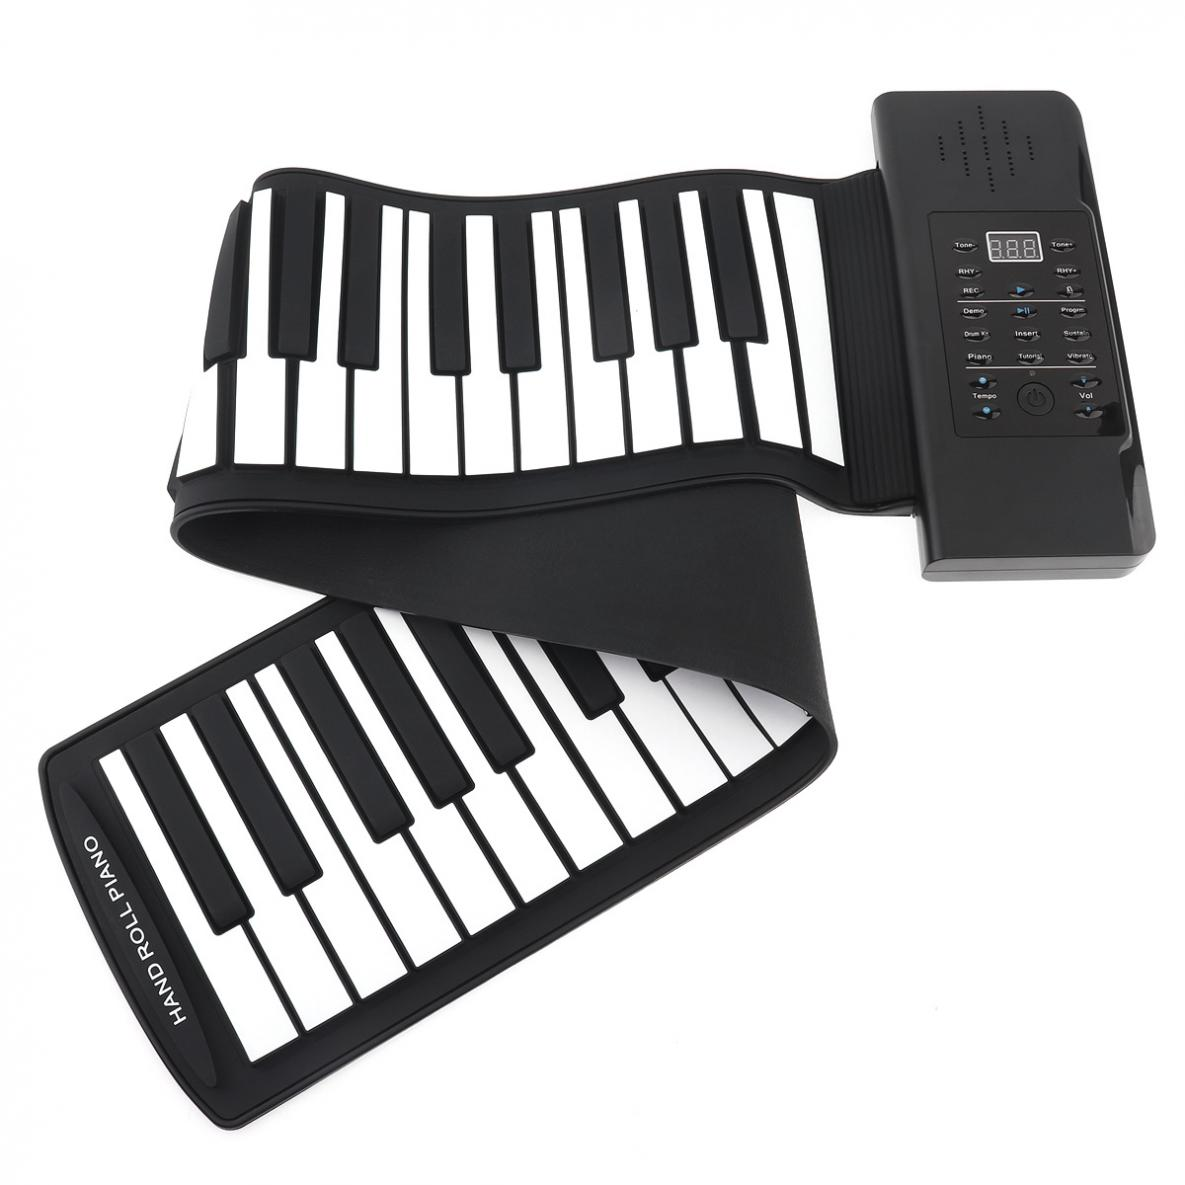 61 Keys USB MIDI Output Roll Up Piano Rechargeable Electronic Portable Silicone Flexible Keyboard Organ Built-in Speakers enlarge